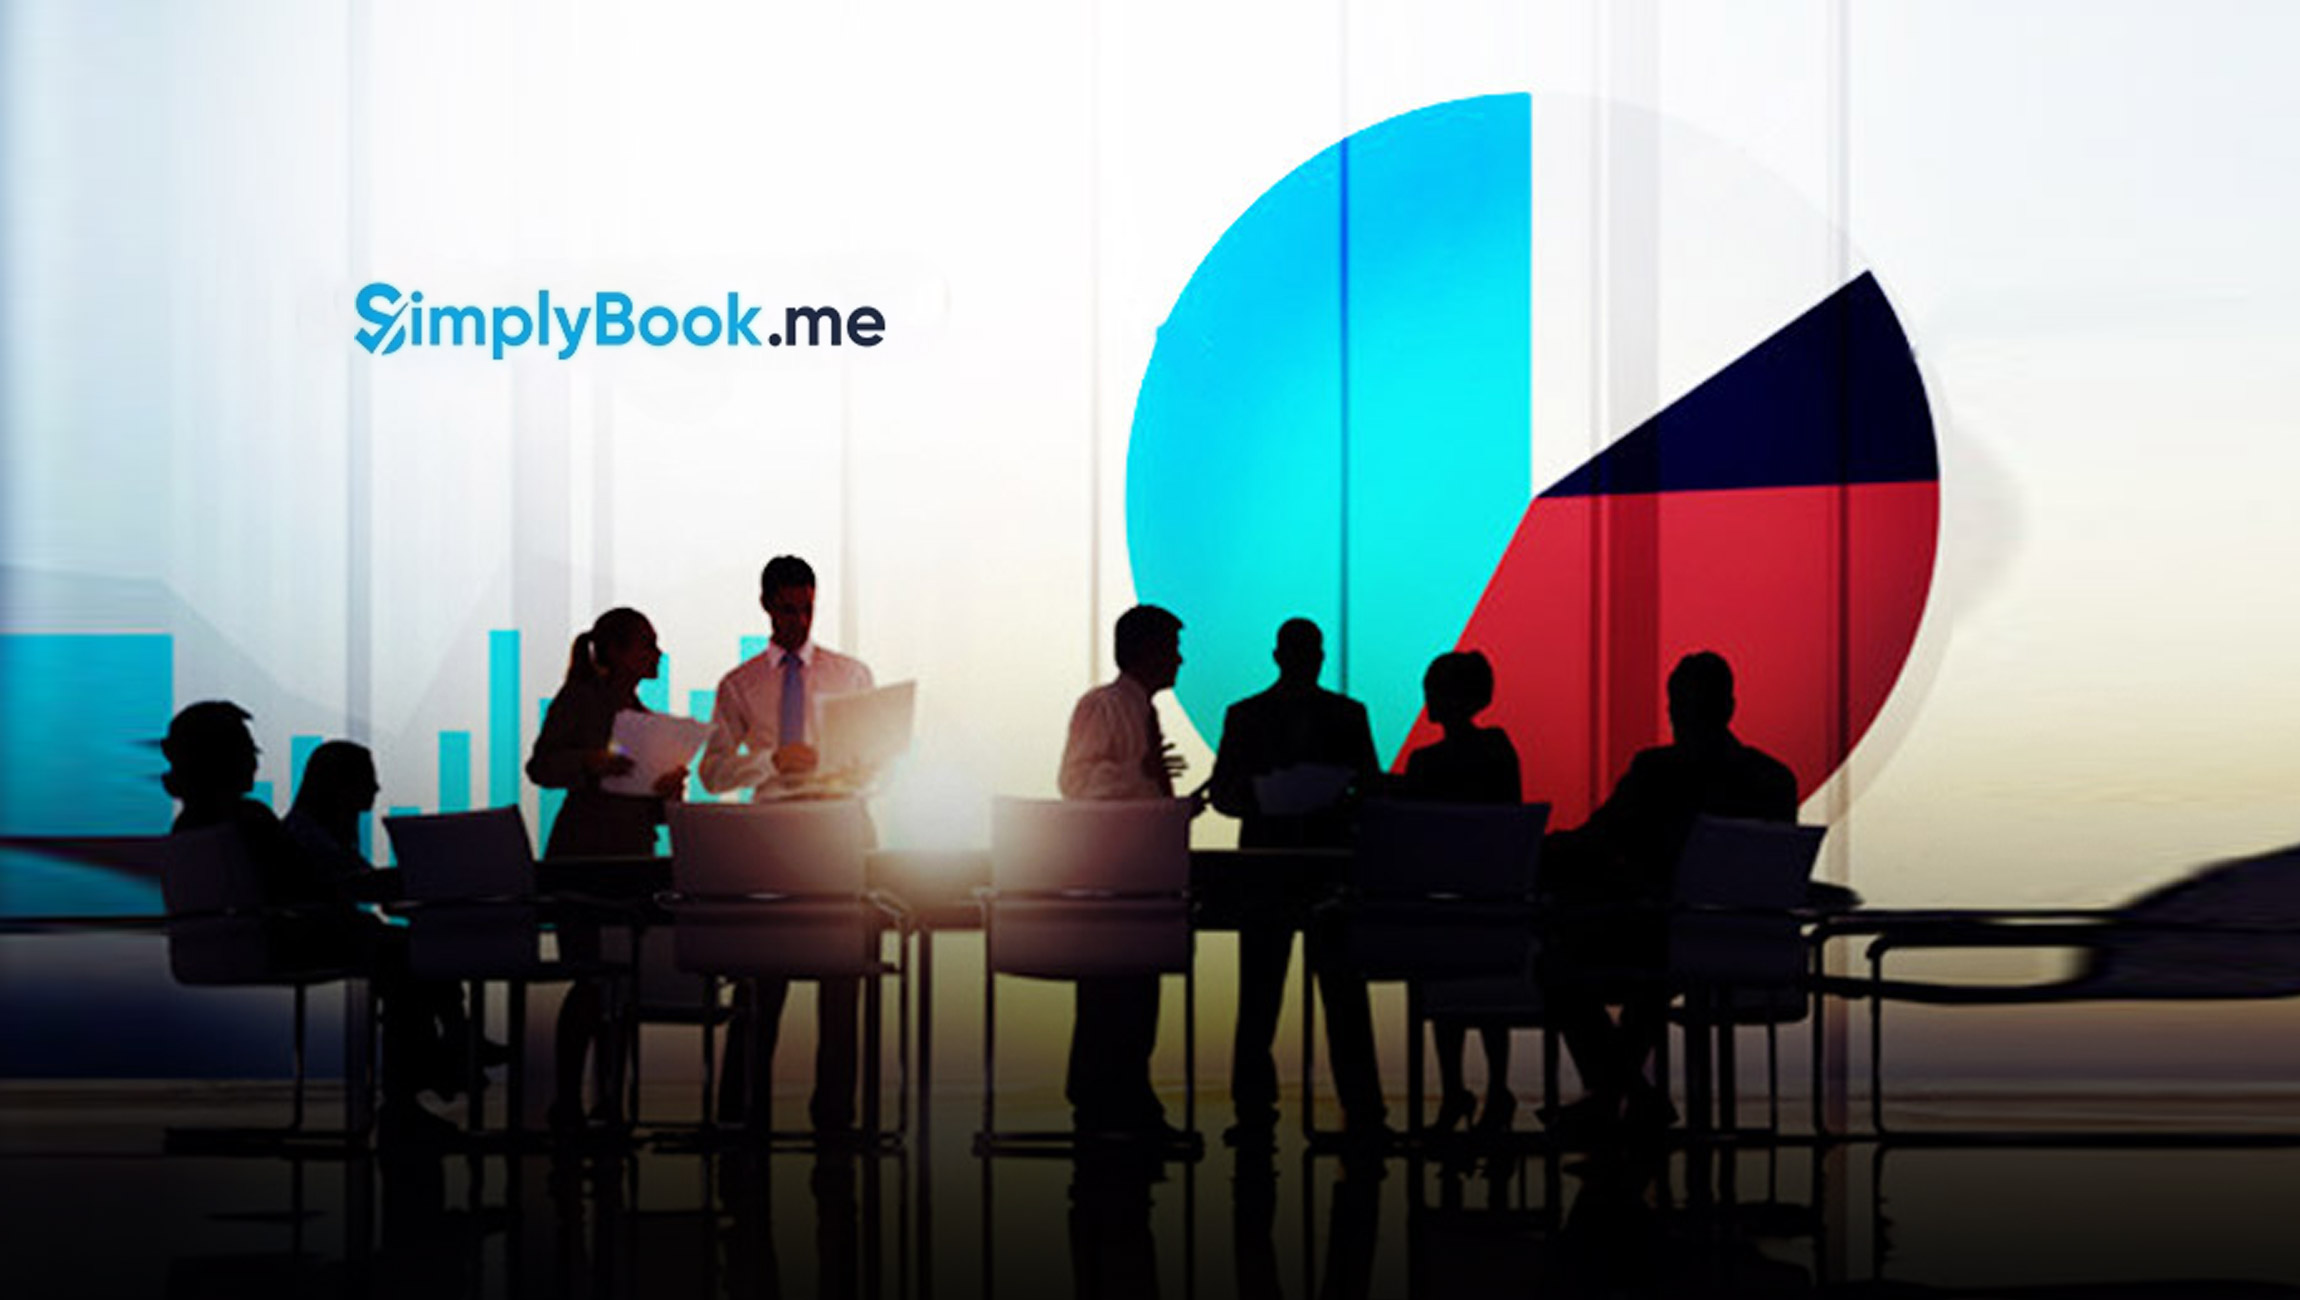 SimplyBook.me Ltd. - Turning a Global Challenge into an Opportunity